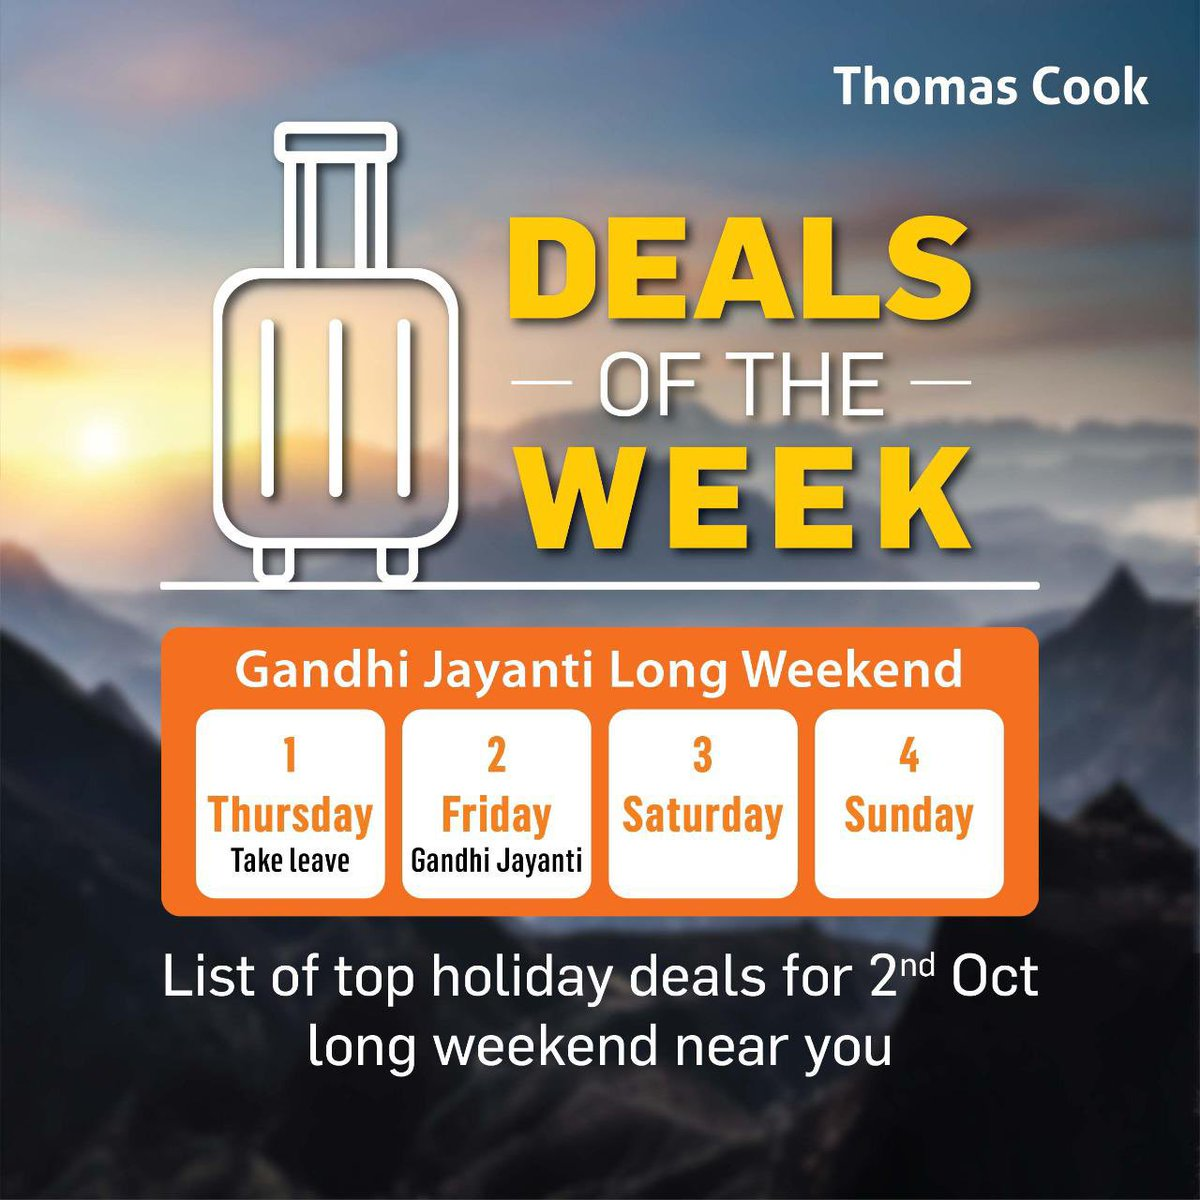 The long #weekend you were waiting for is here!  Give your self a much deserved break break with our Best 'Deals of the Week' long Weekend #Holiday packages starting @ Rs.4 255.00  To Book Now click here https://t.co/iUayYvs66P https://t.co/YgElRToteK